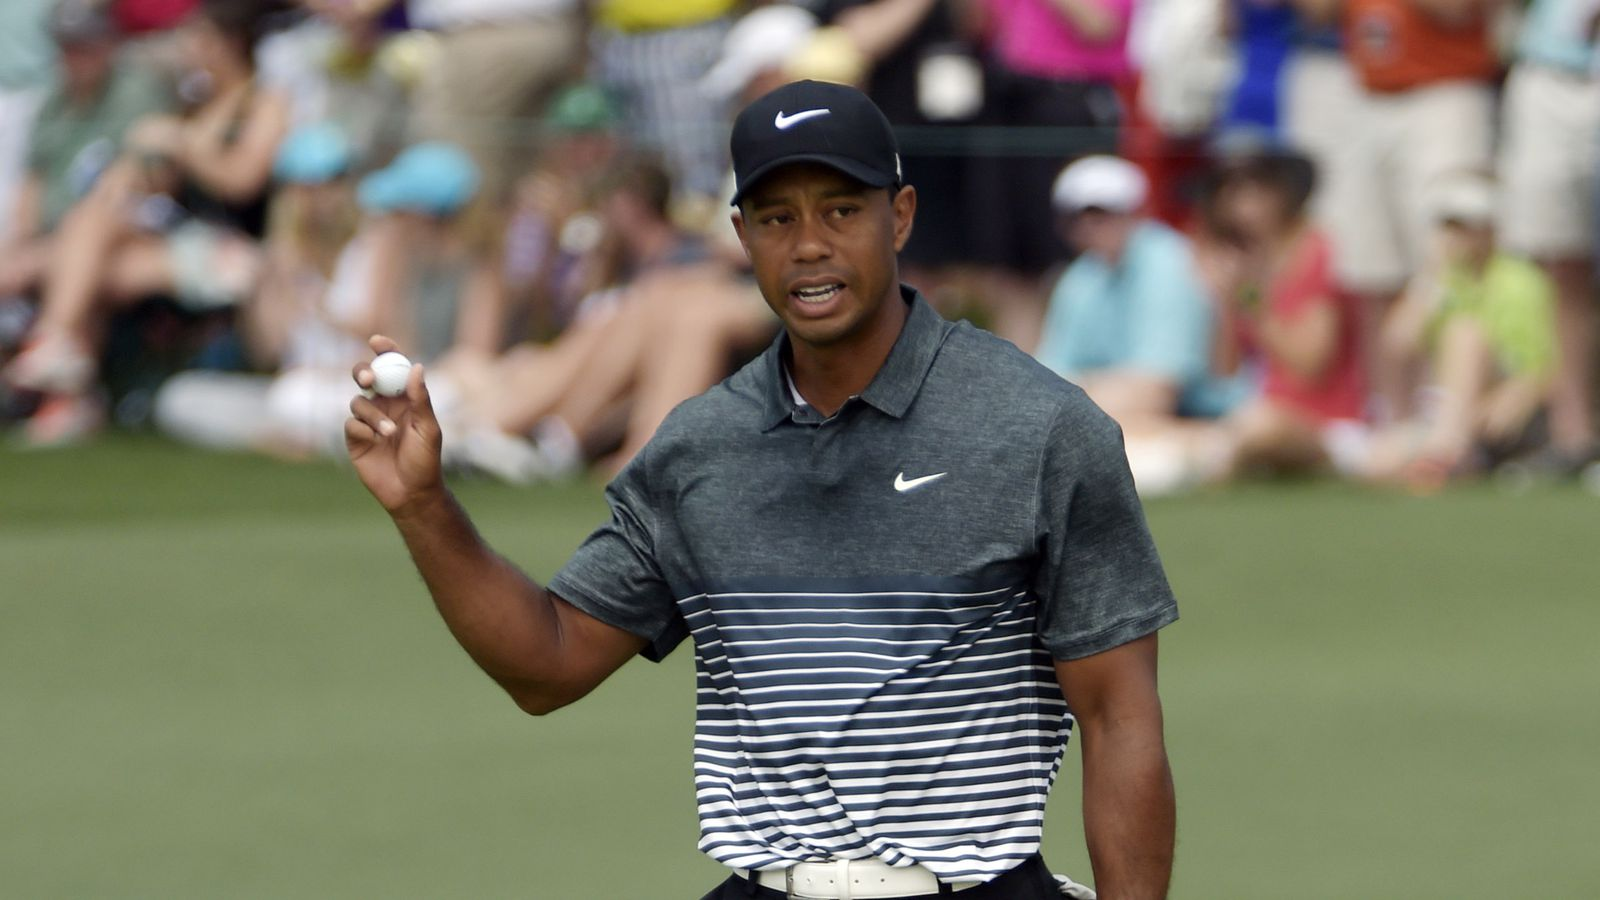 tiger woods is on fire and making moves at the masters